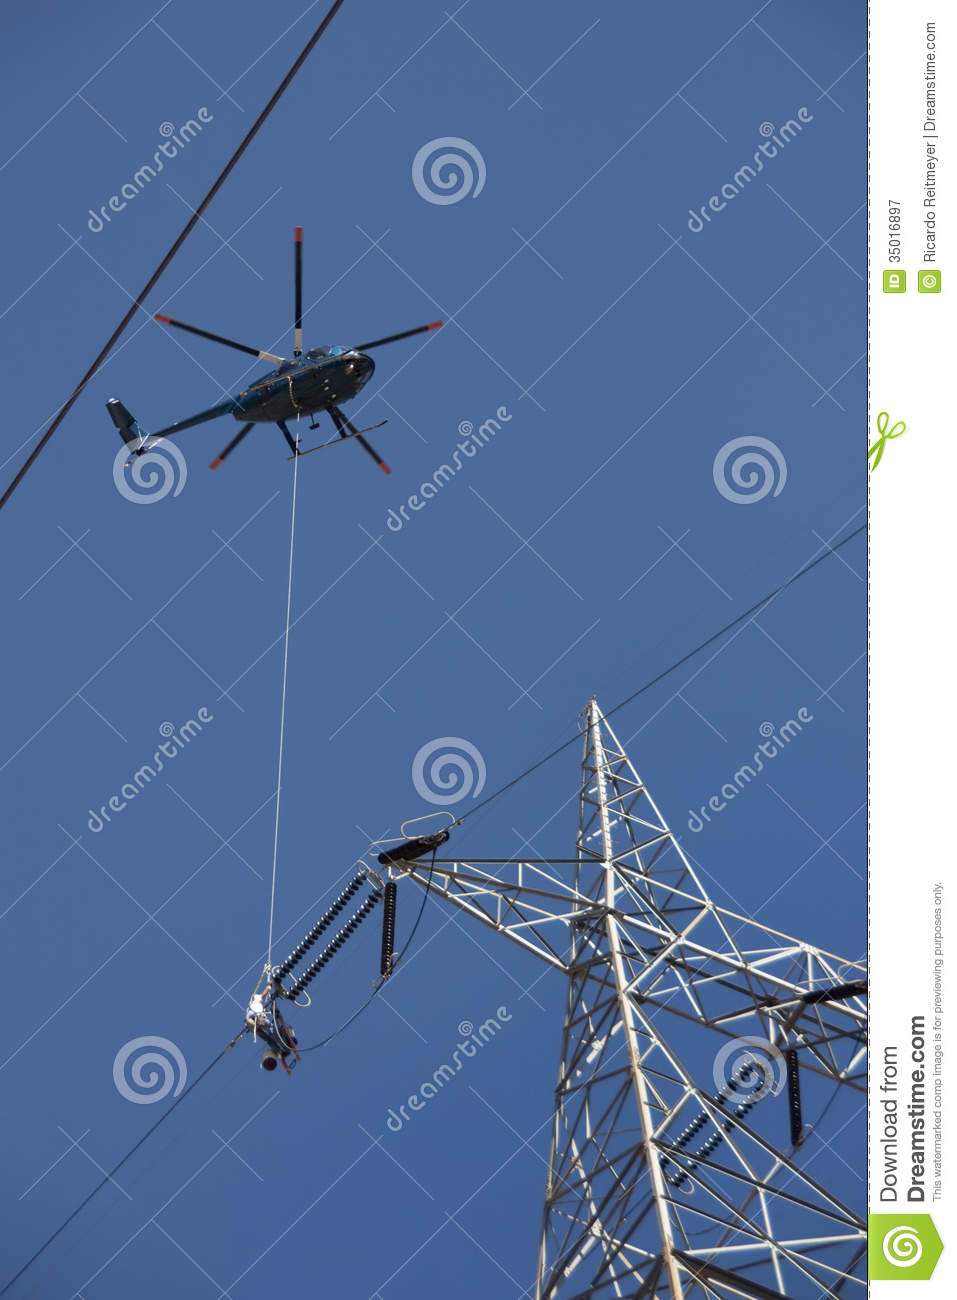 High Voltage Power Lines : Dangerous high voltage power line work from a helicopter